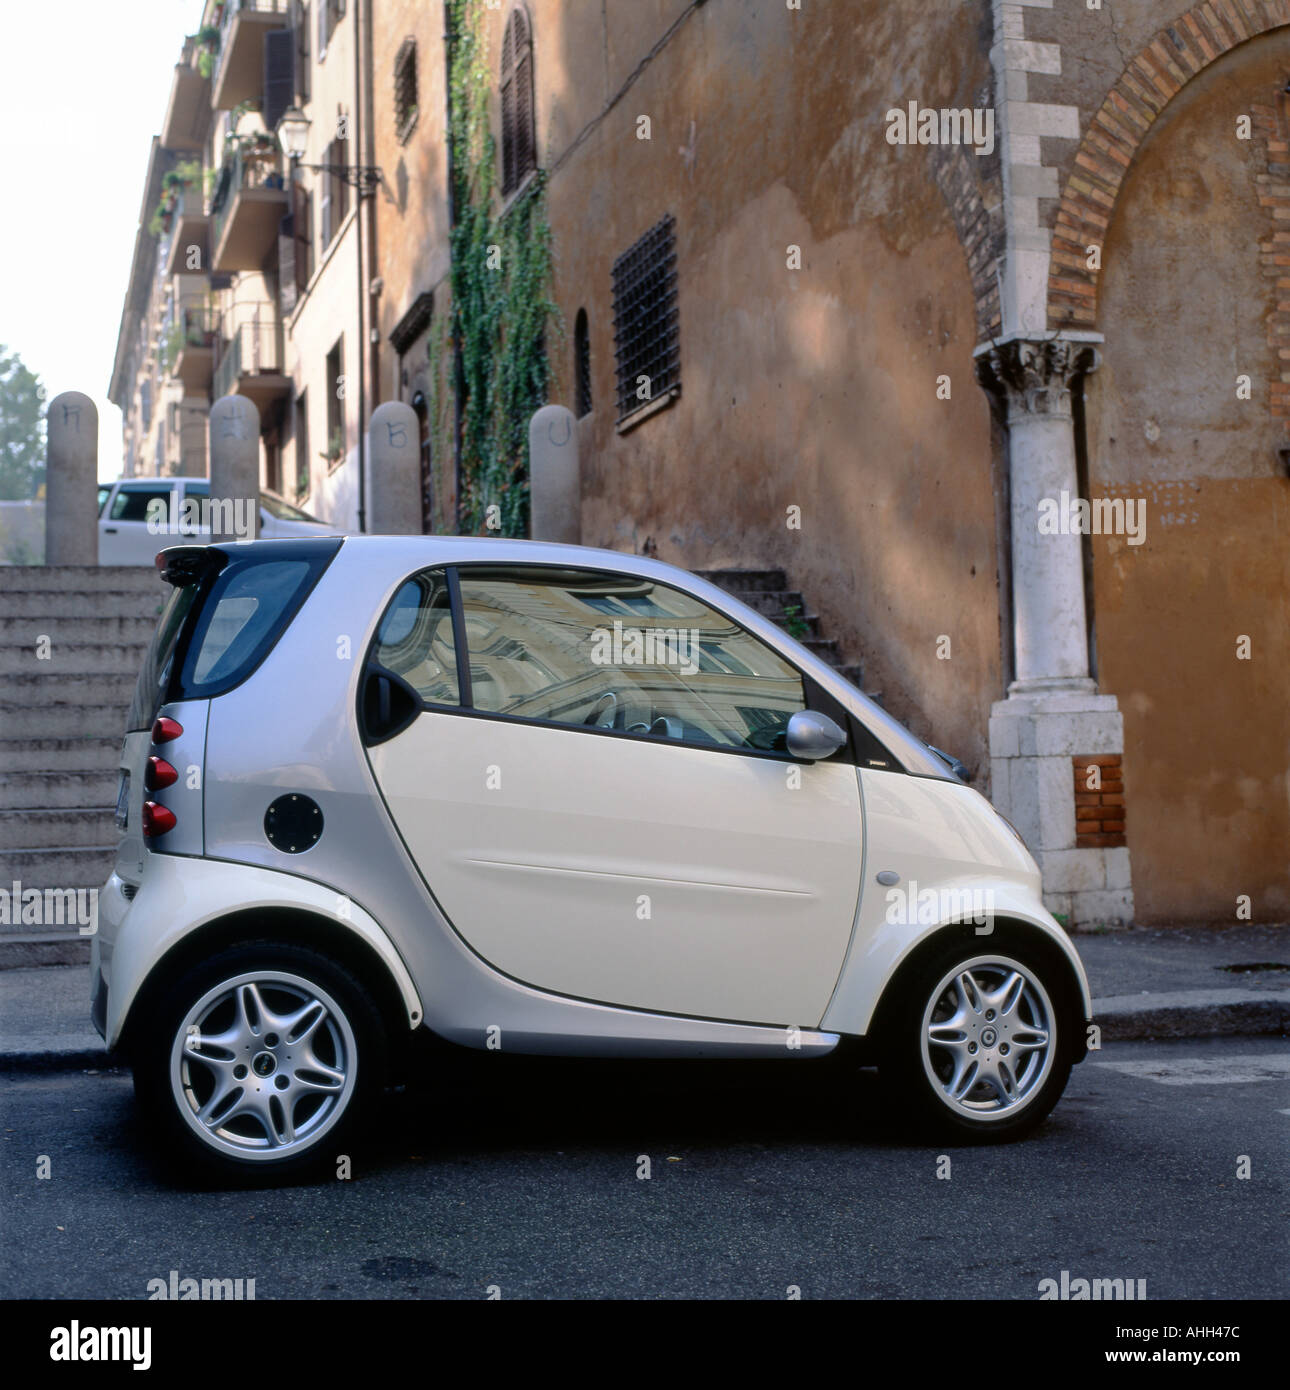 Mercedez Benz Small Fuel Efficient Smart Car Parked In A